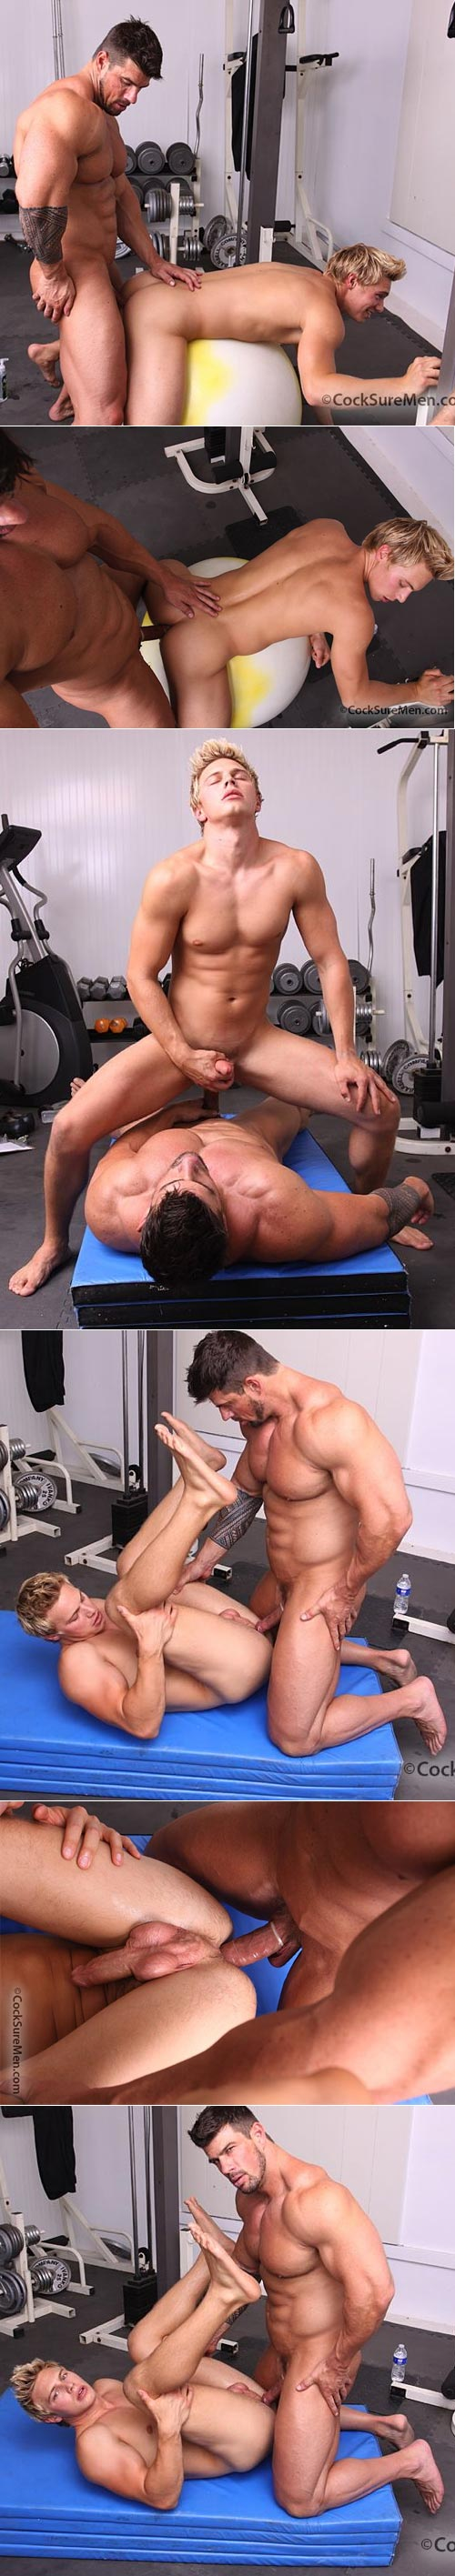 Zeb Atlas Gay Video 46